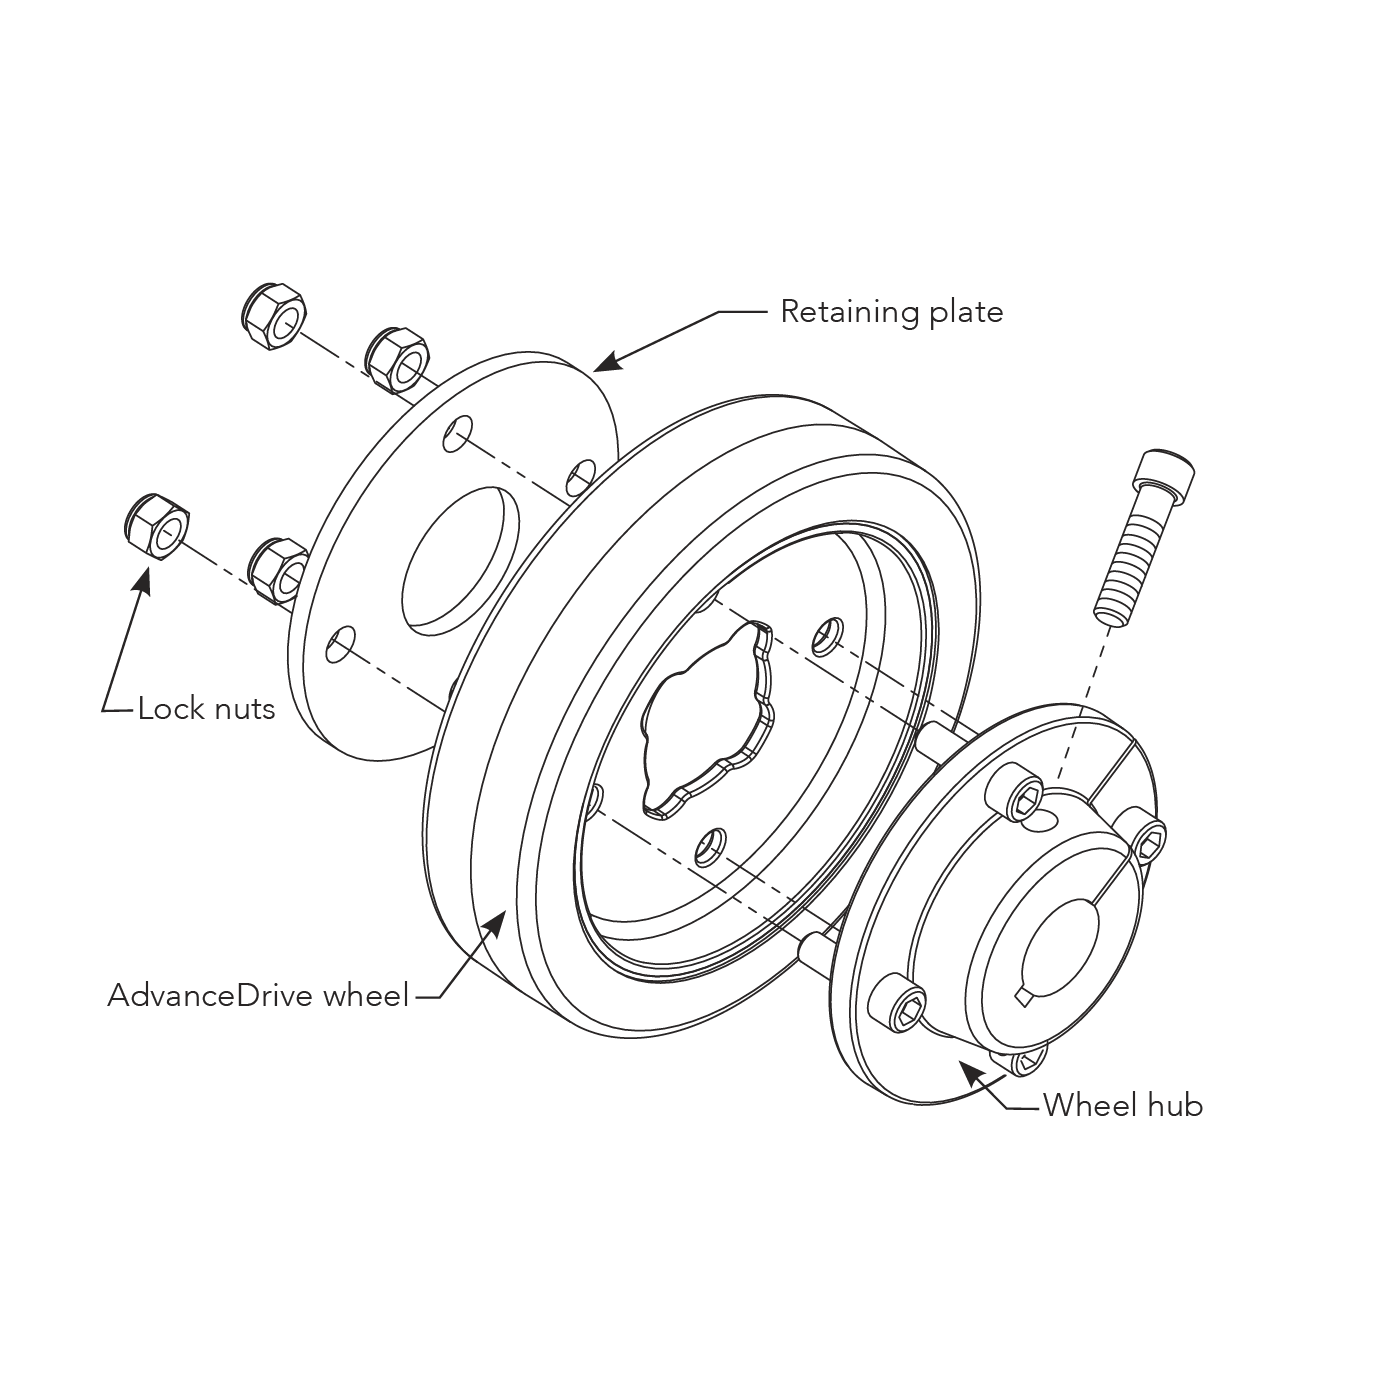 hysecurity wiring diagram wiring library  hysecurity mx002707 wheel assembly